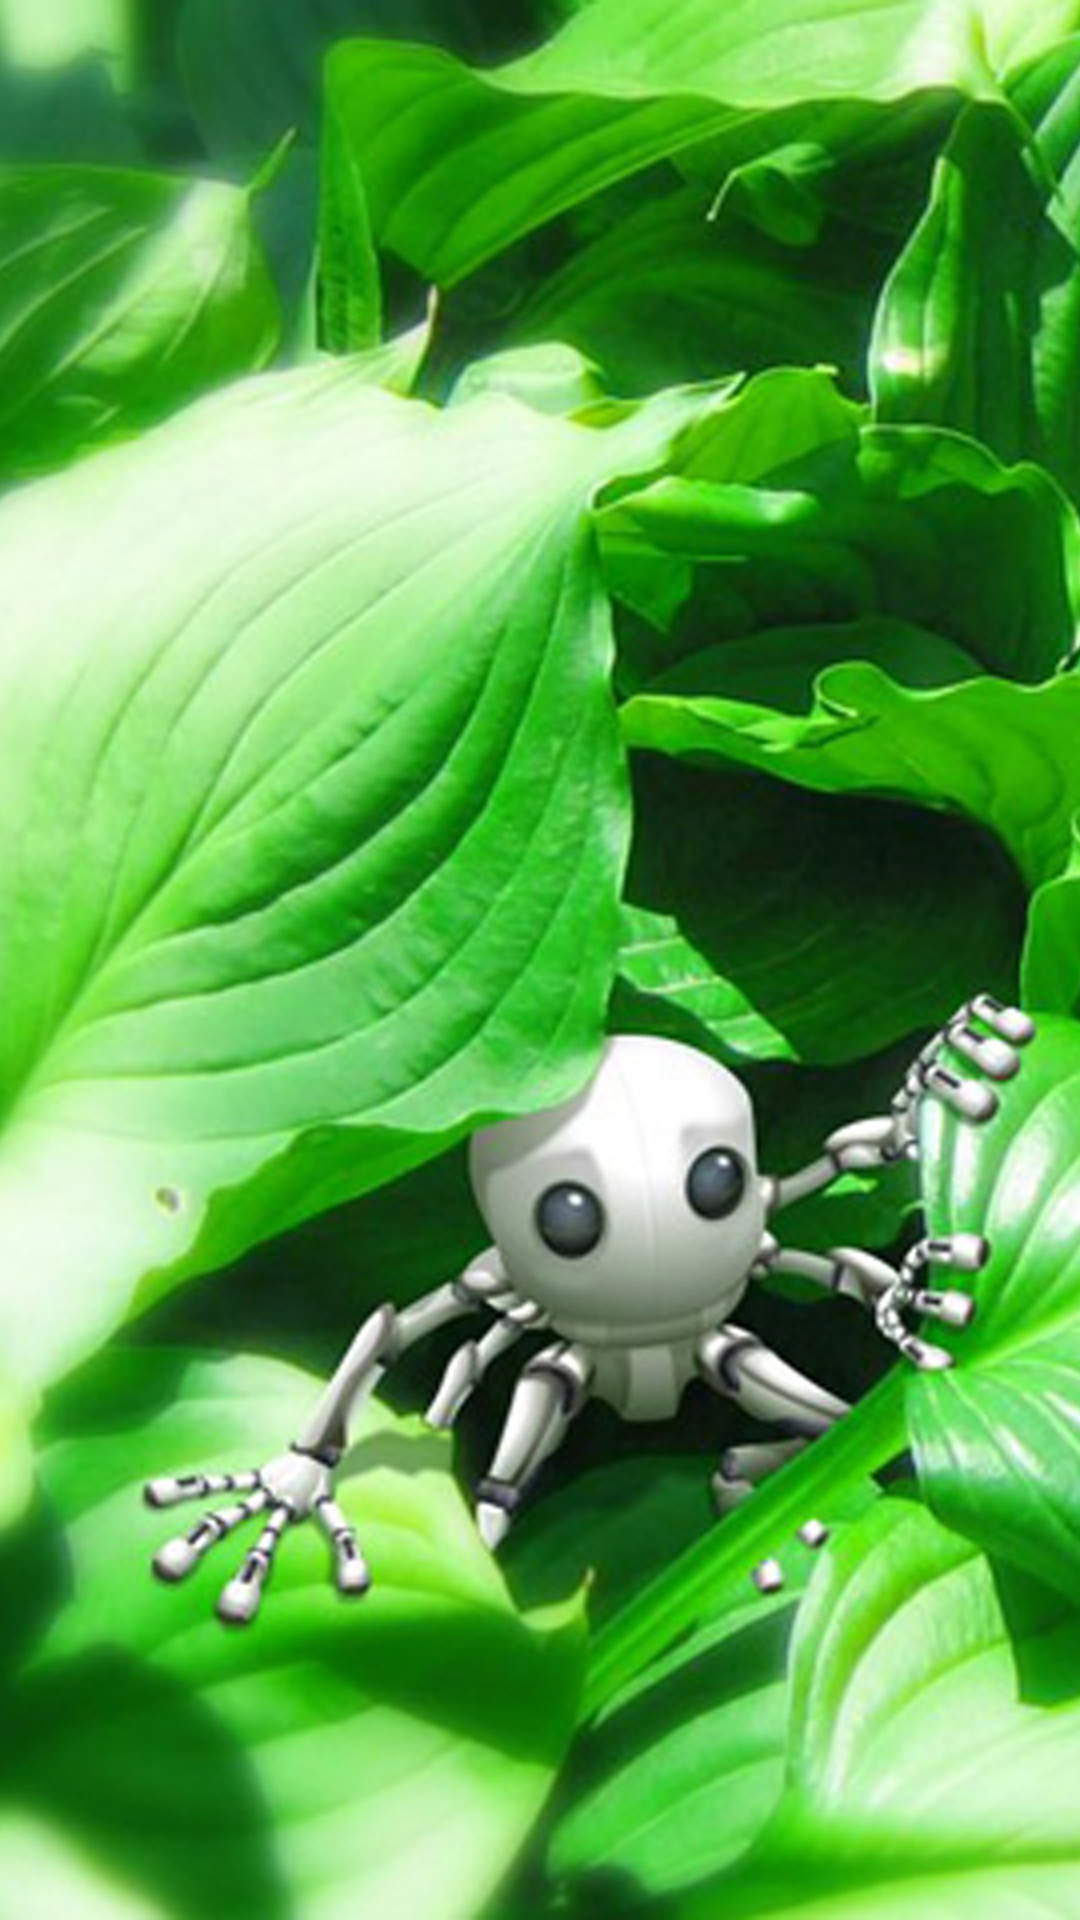 wallpaper wiki small robot wallpaper for android pic